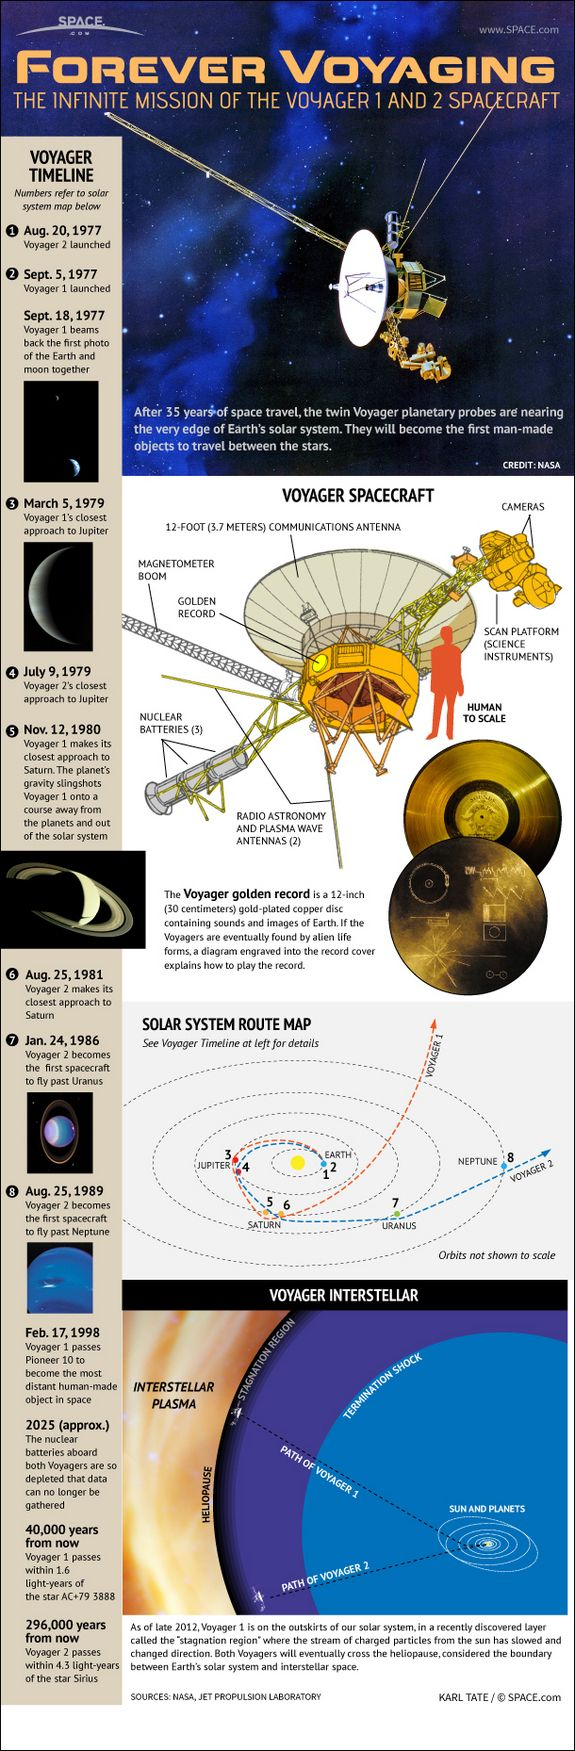 96 Best We Are Science Images On Pinterest Outer Space The 7 Way Trailer Plug Wiring Diagram Contrail Triler Infographic Unmanned Voyager 1 And 2 Probes Visited Planets Of Solar System